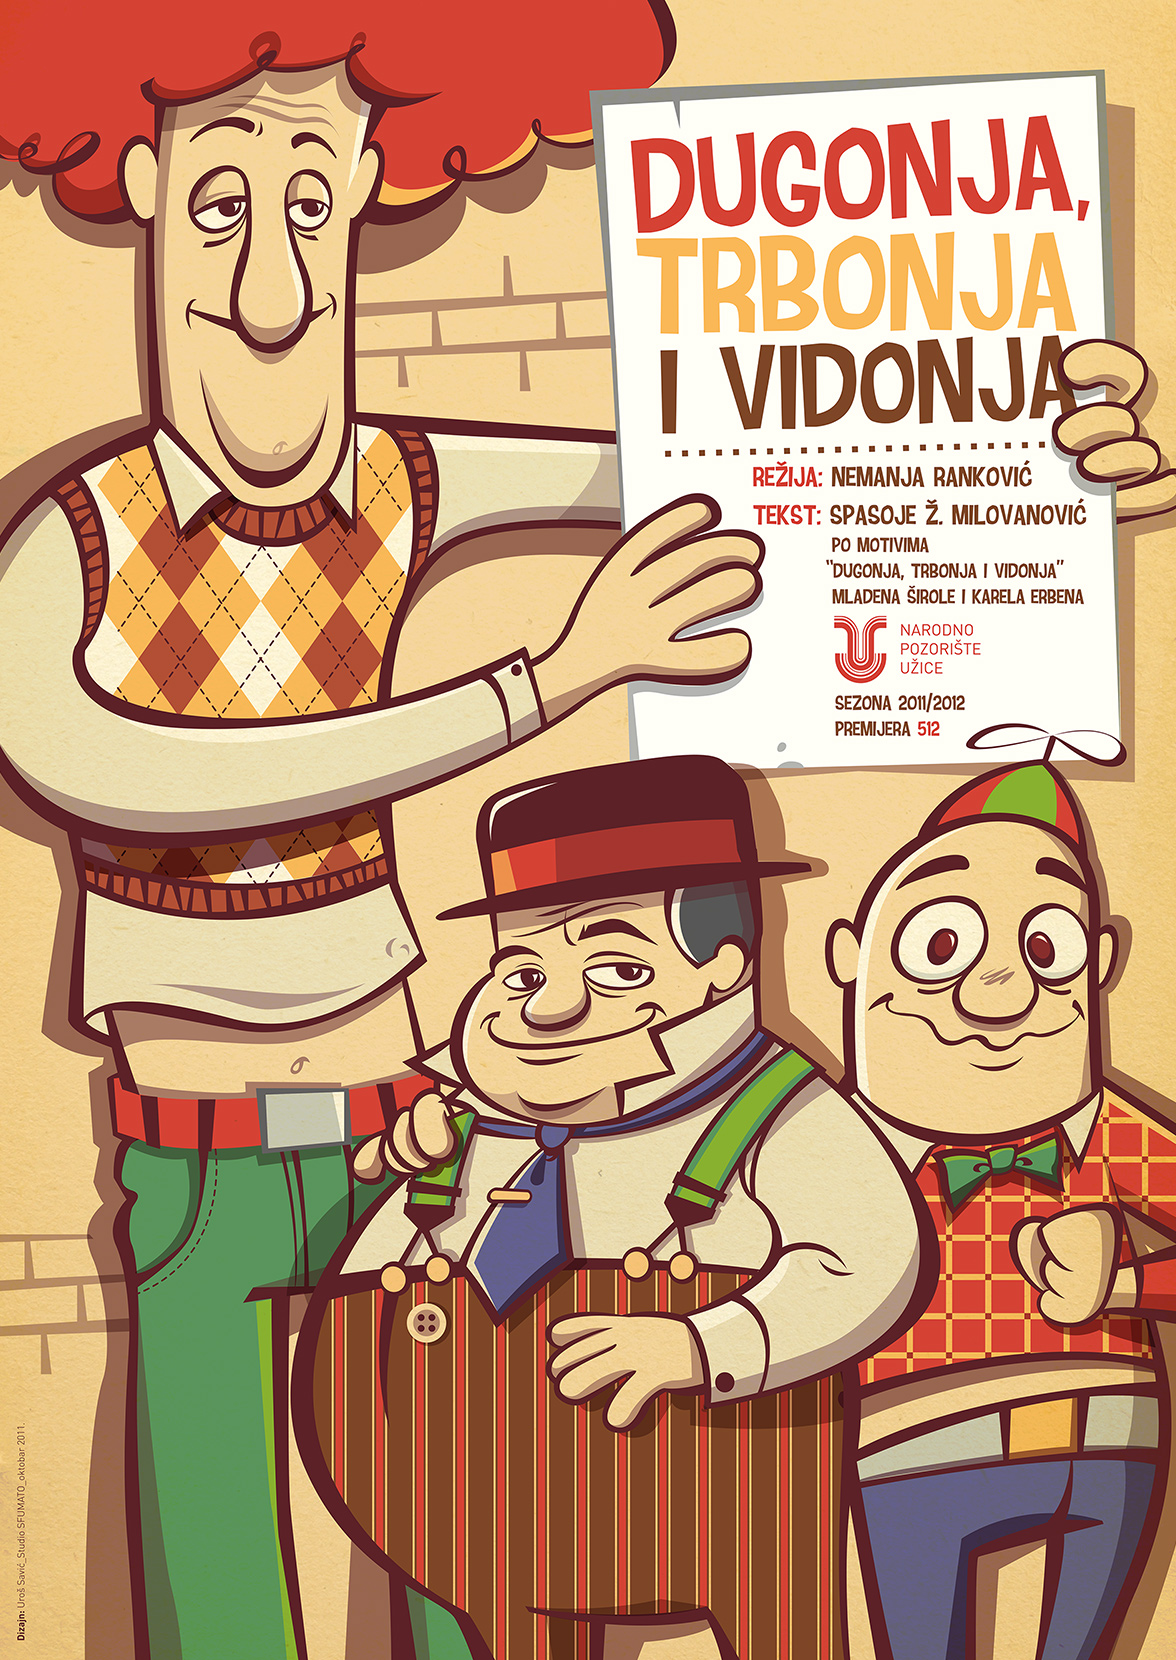 Theatre Play for Children - Poster Design